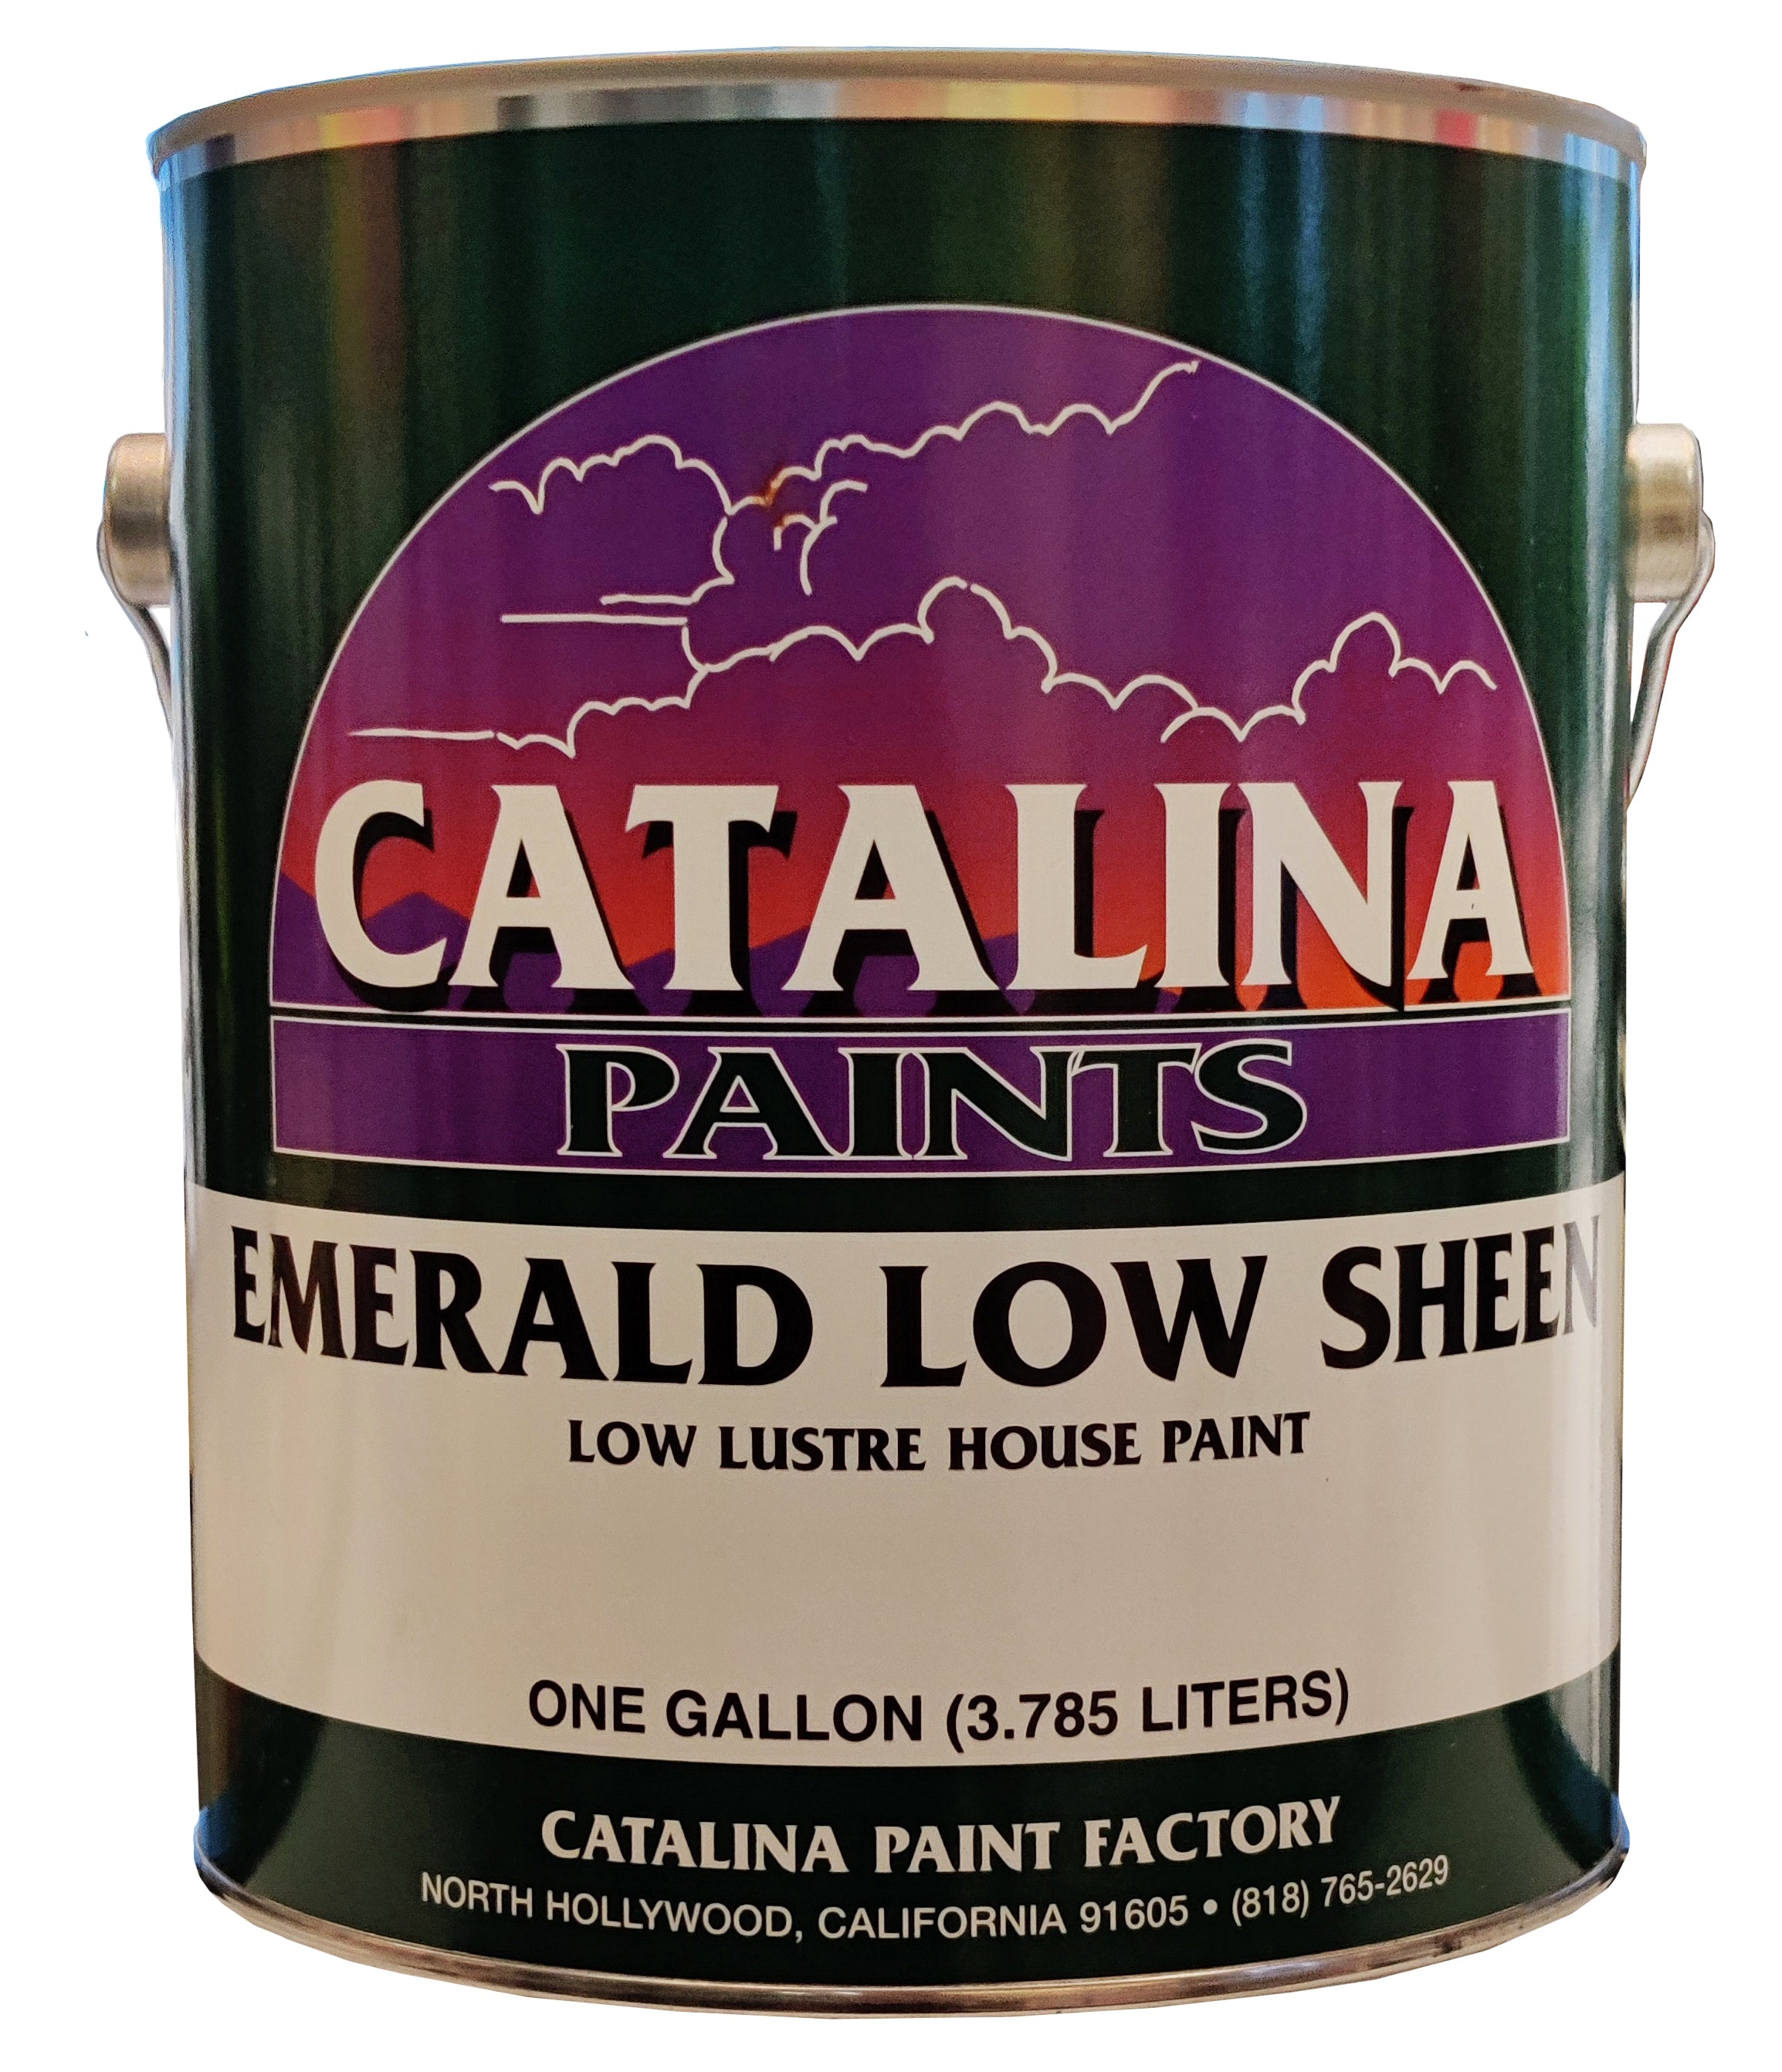 Emerald Low Sheen House Paint 595